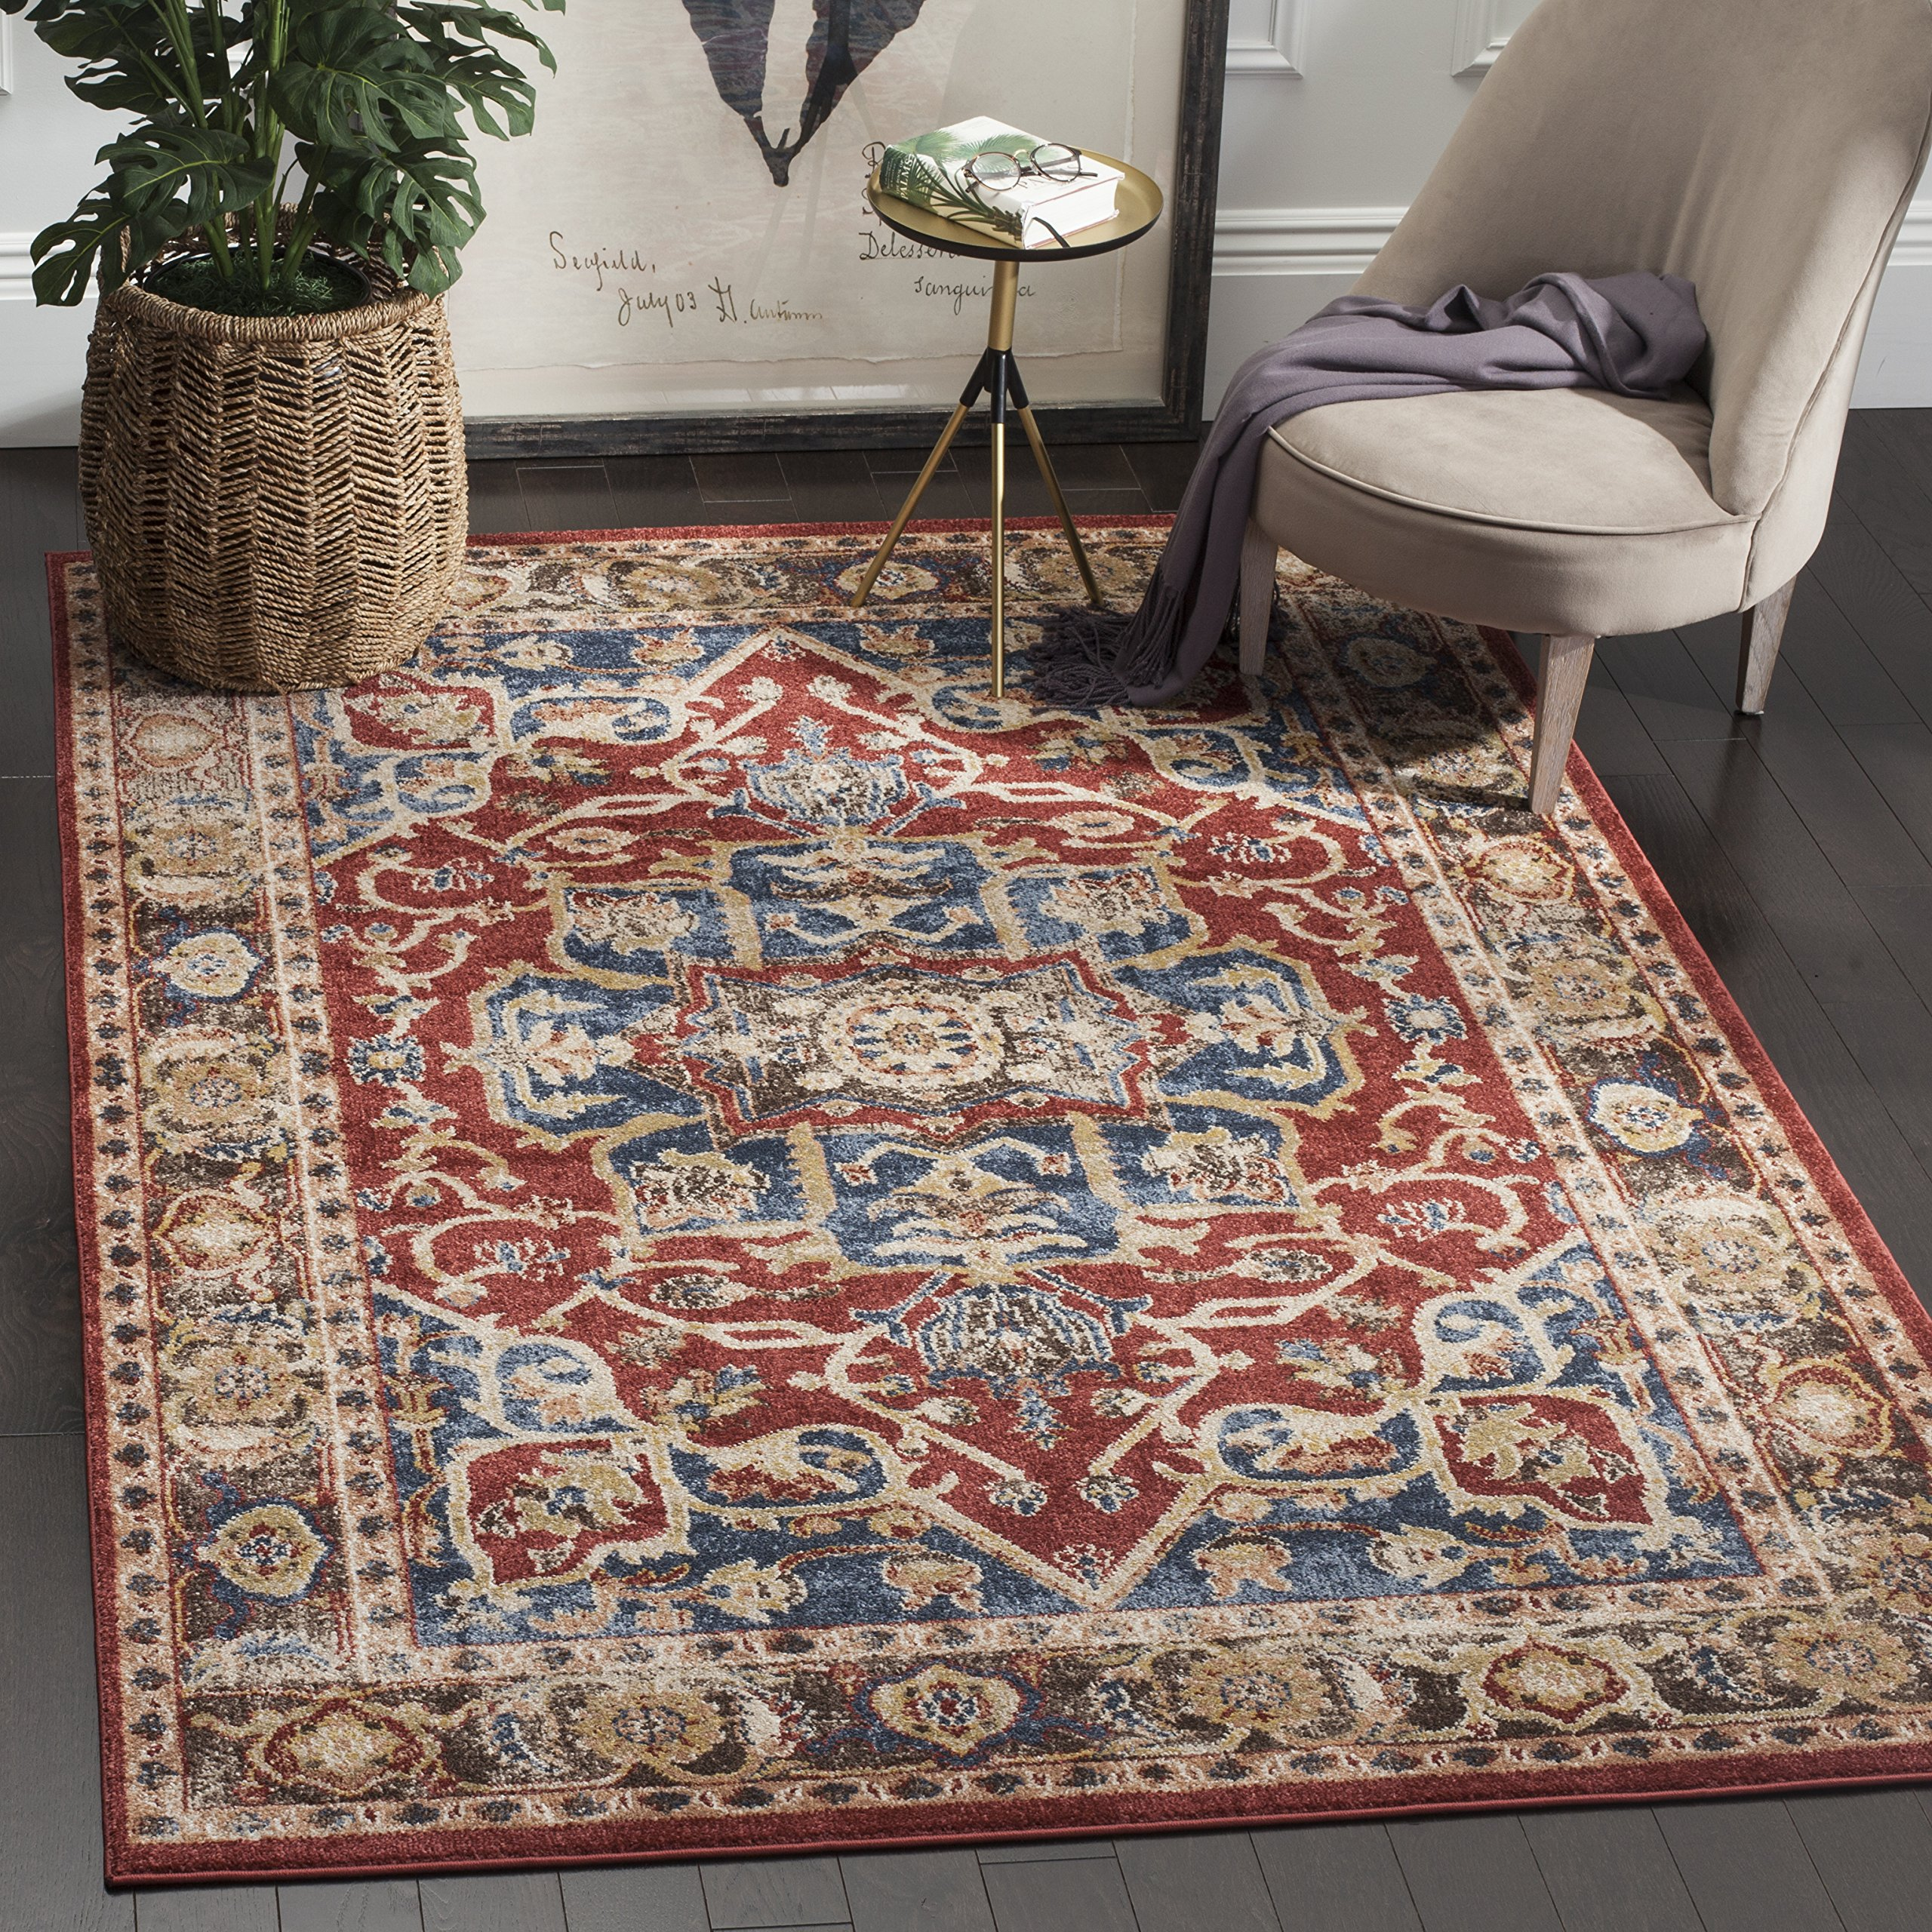 Safavieh Bijar Collection BIJ605R Red and Royal Blue Vintage Oriental Area Rug (10' x 14') by Safavieh